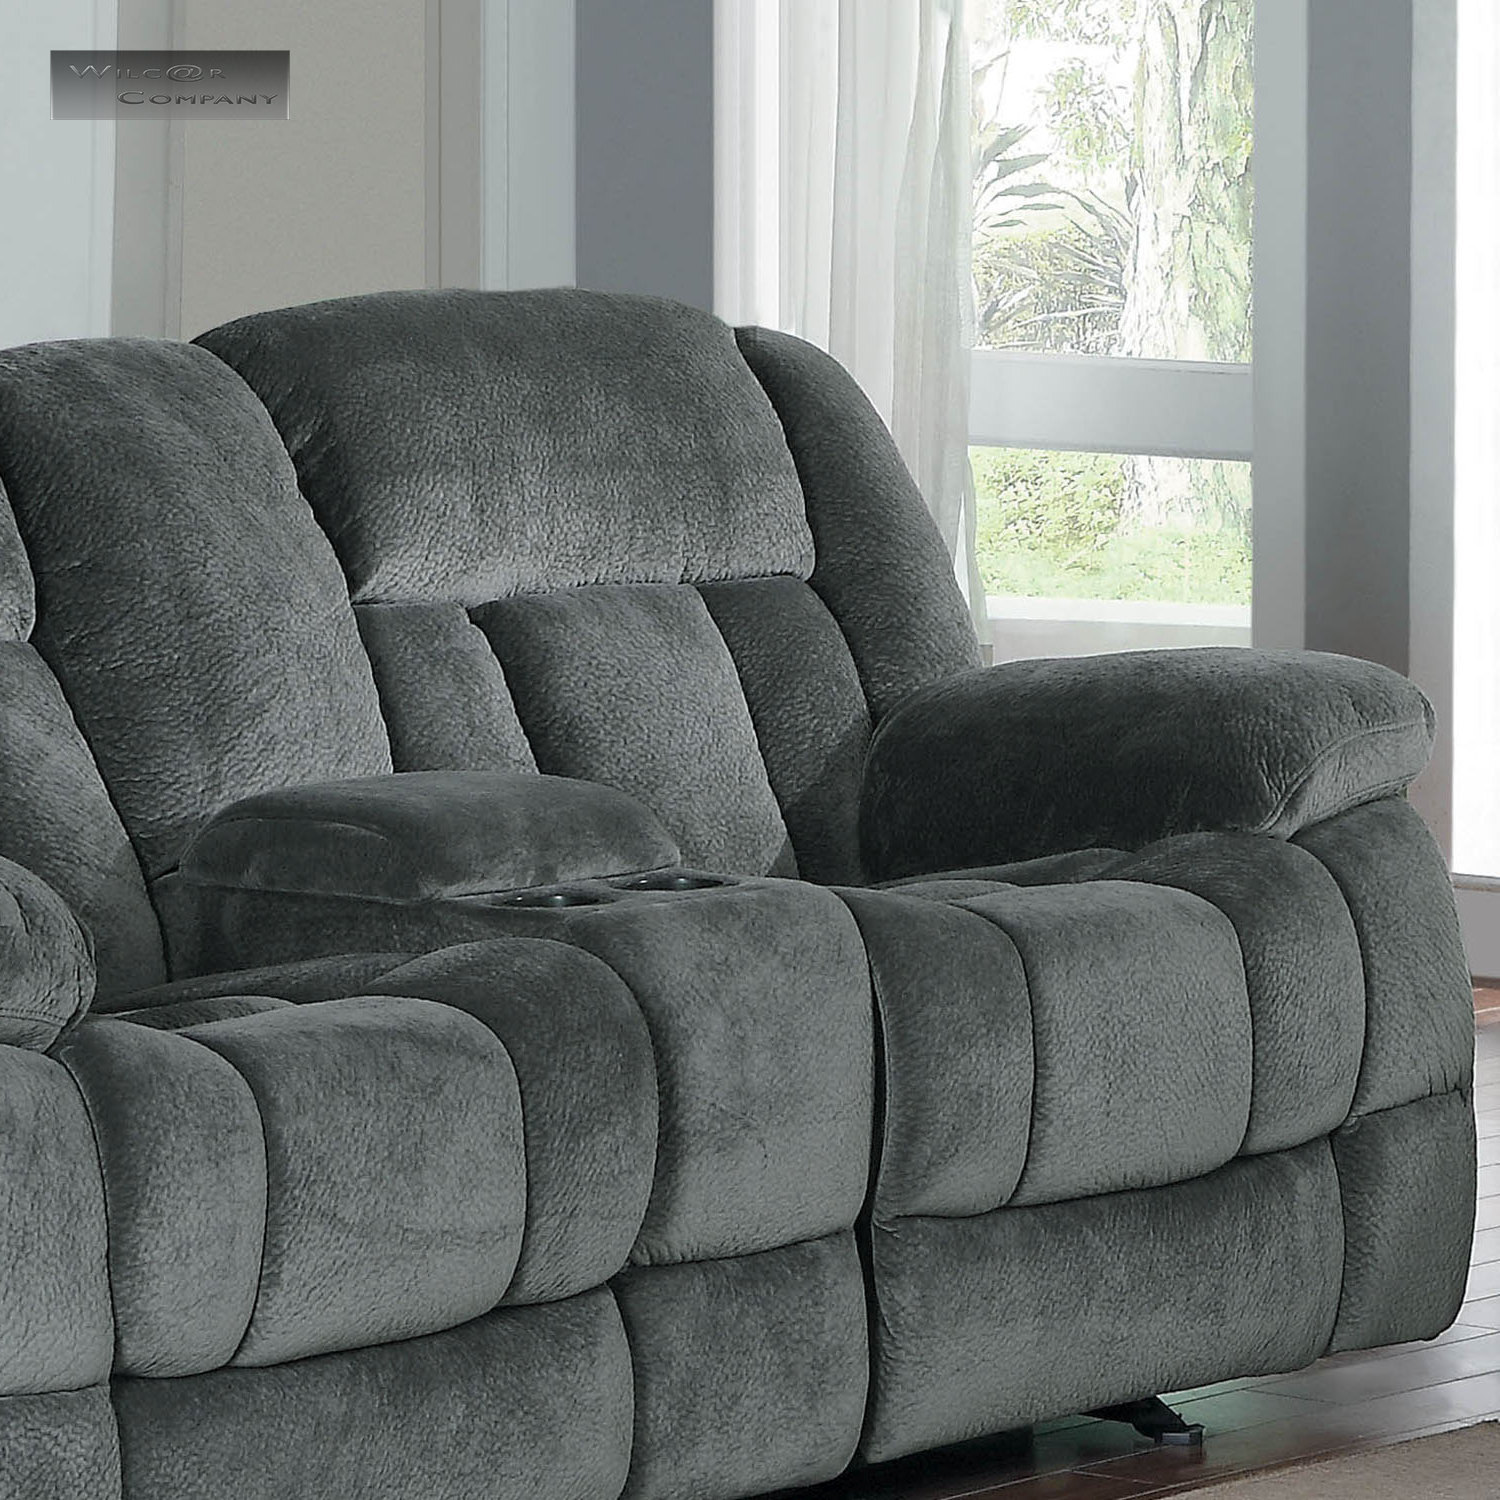 lazy boy glider rocking chair gabriel gundacker metal chairs vine new grey rocker double recliner loveseat sofa